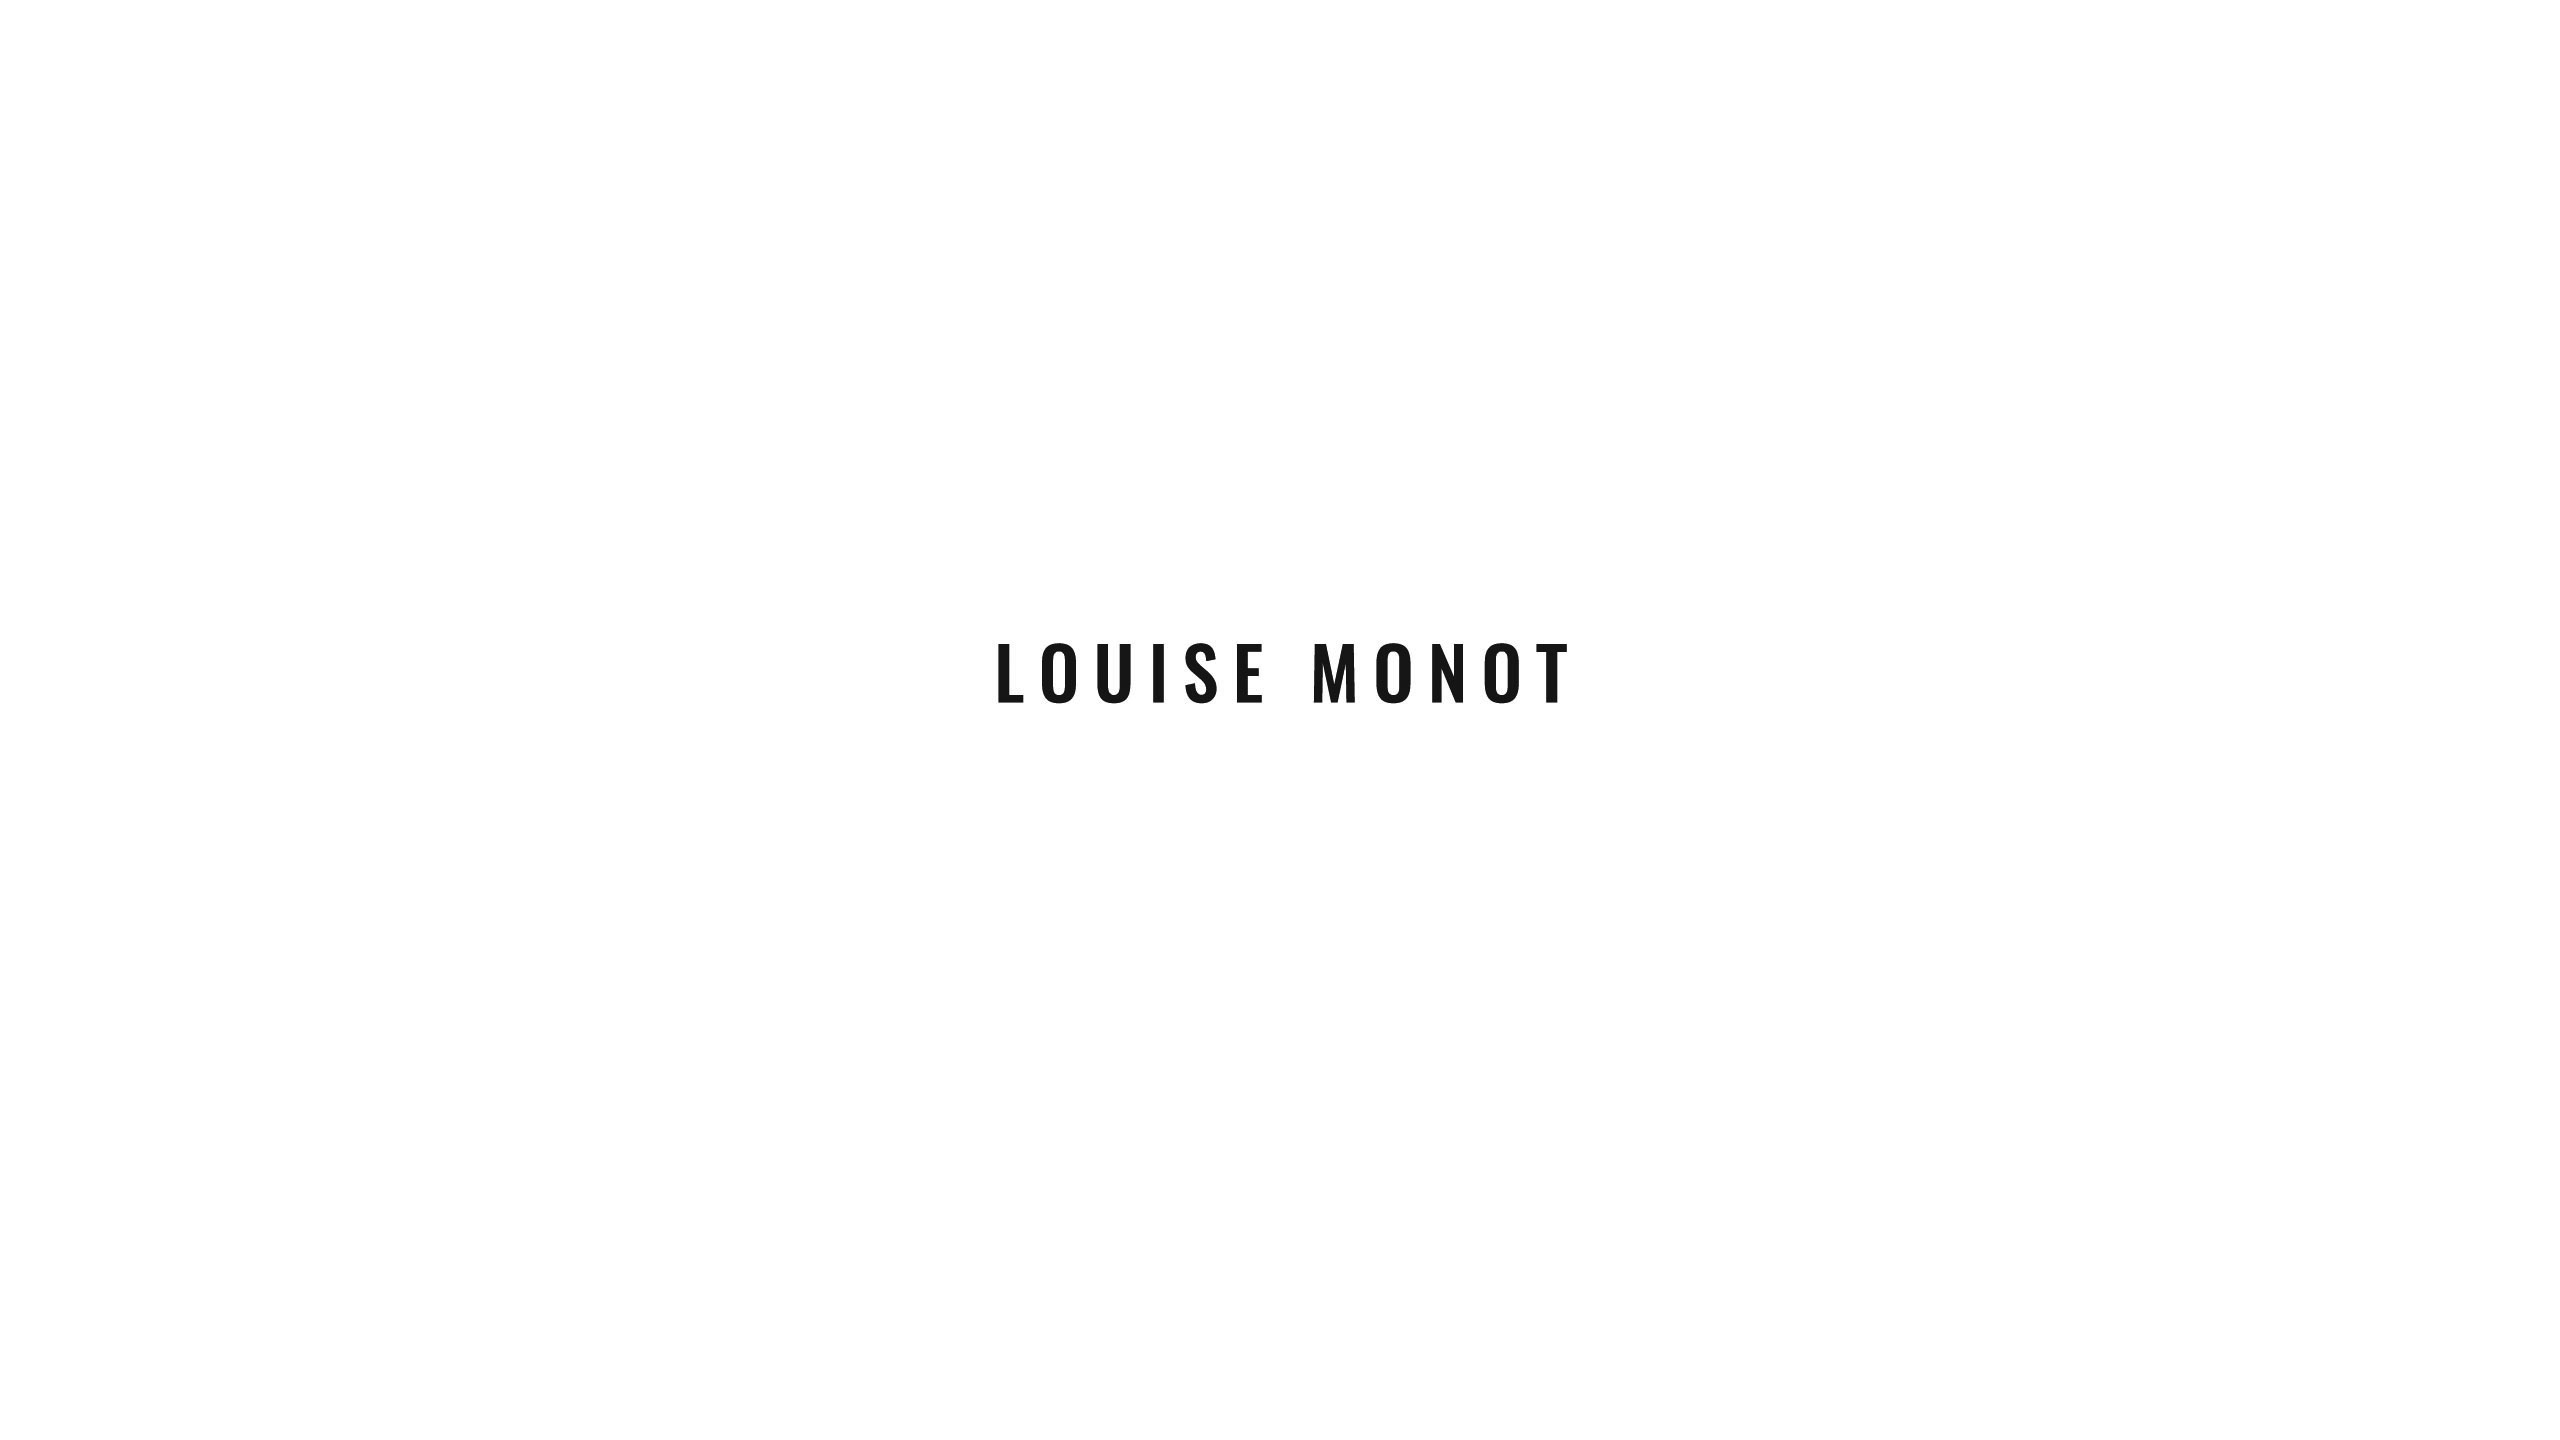 1a_Text_LOISE_MONOT